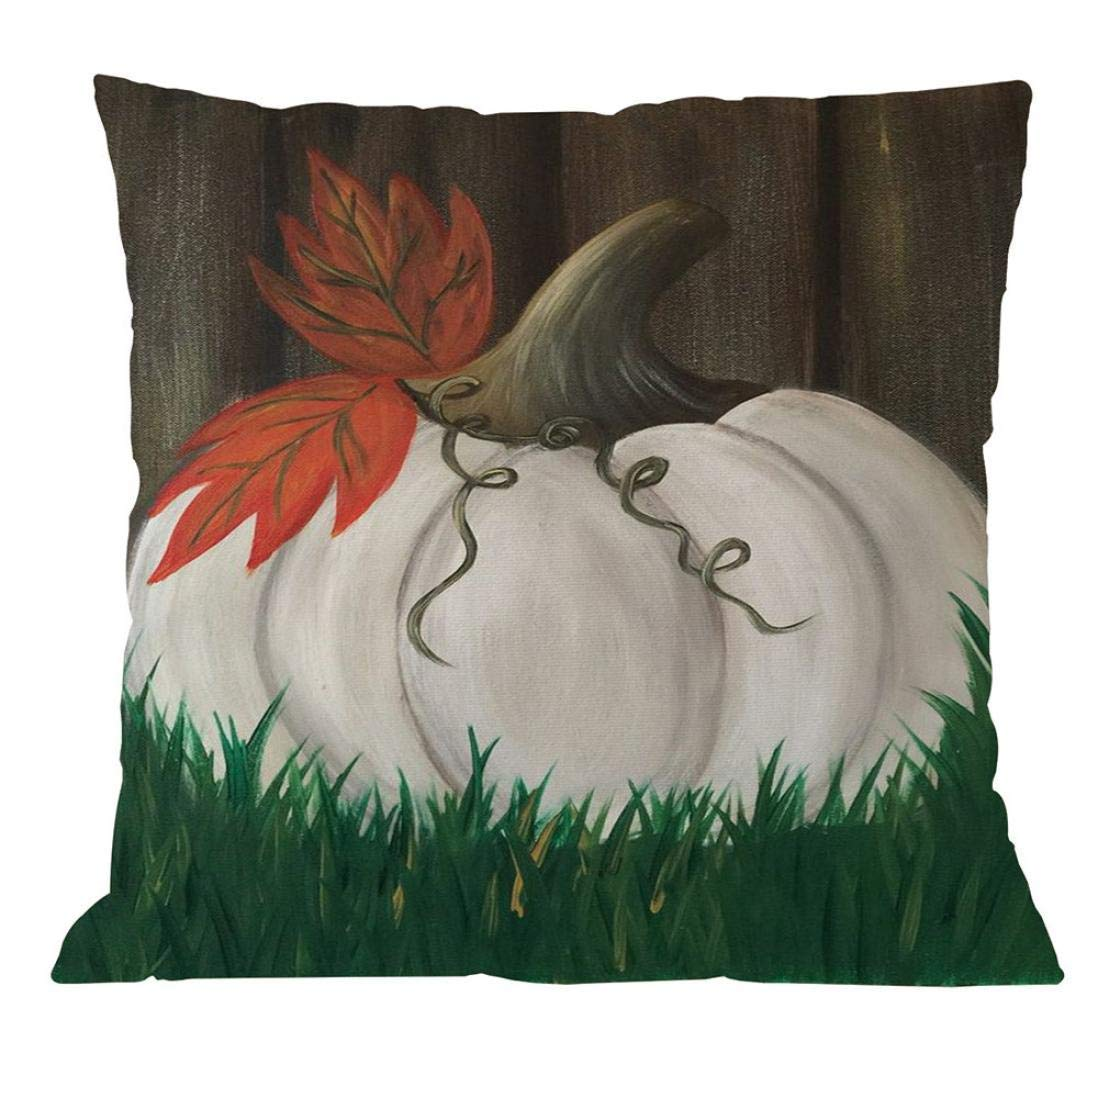 "Pillow Case, Shybuy Halloween Pumpkin Pattern Square Cotton Blend Sofa Home Decorative Throw Pillow Case Cushion Cover (I, 18""x18"")"